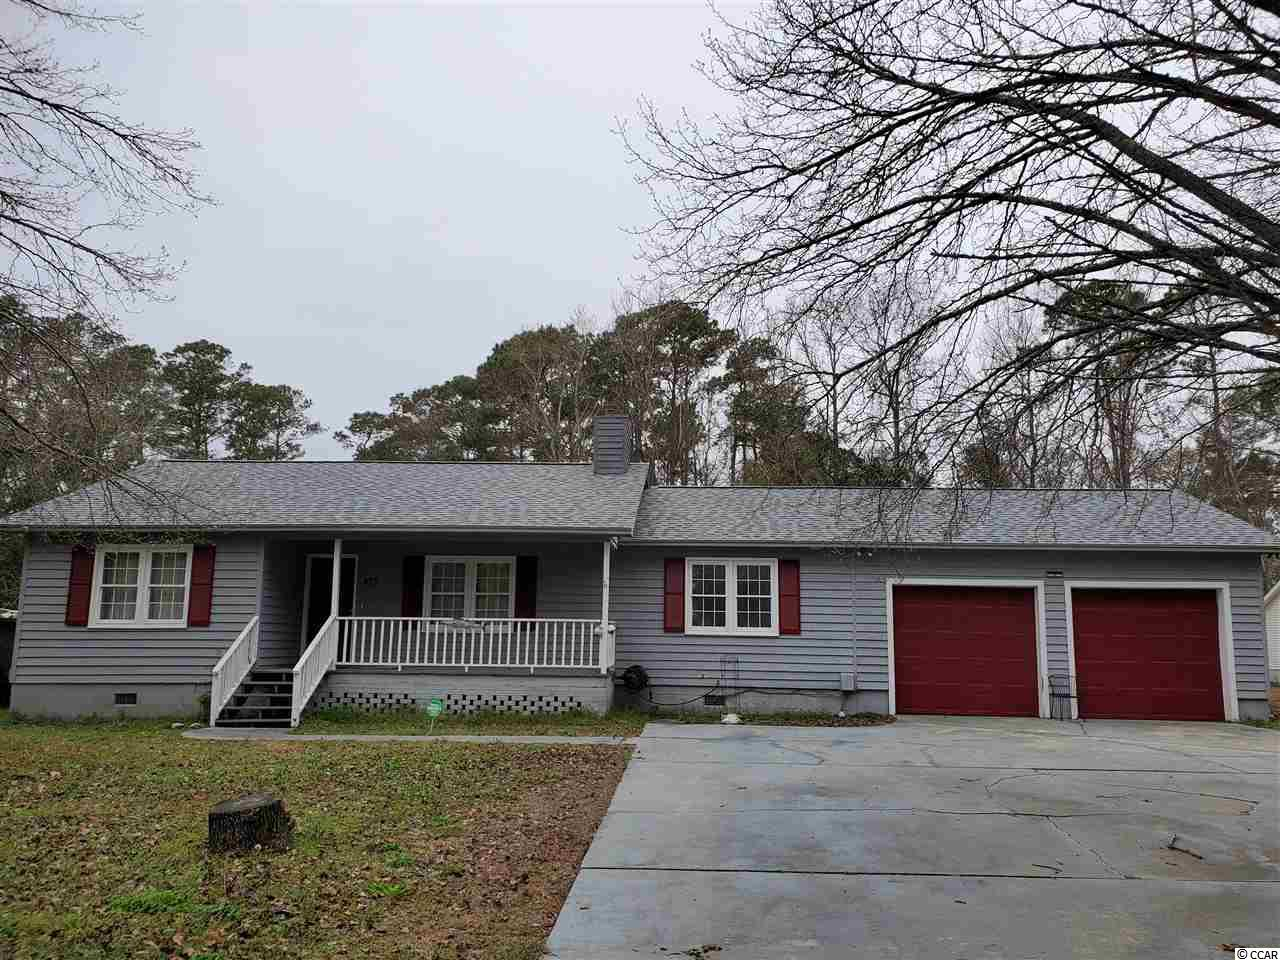 This Home is located on a couple of blocks from the creek in Murrells Inlet. Large deck on large lot with fenced in area for dogs .Over sized Garage with workshop area.Laminate flooring and tile throughout. Detached shed inside of fenced in yard.Fixer upper with lots of potential.